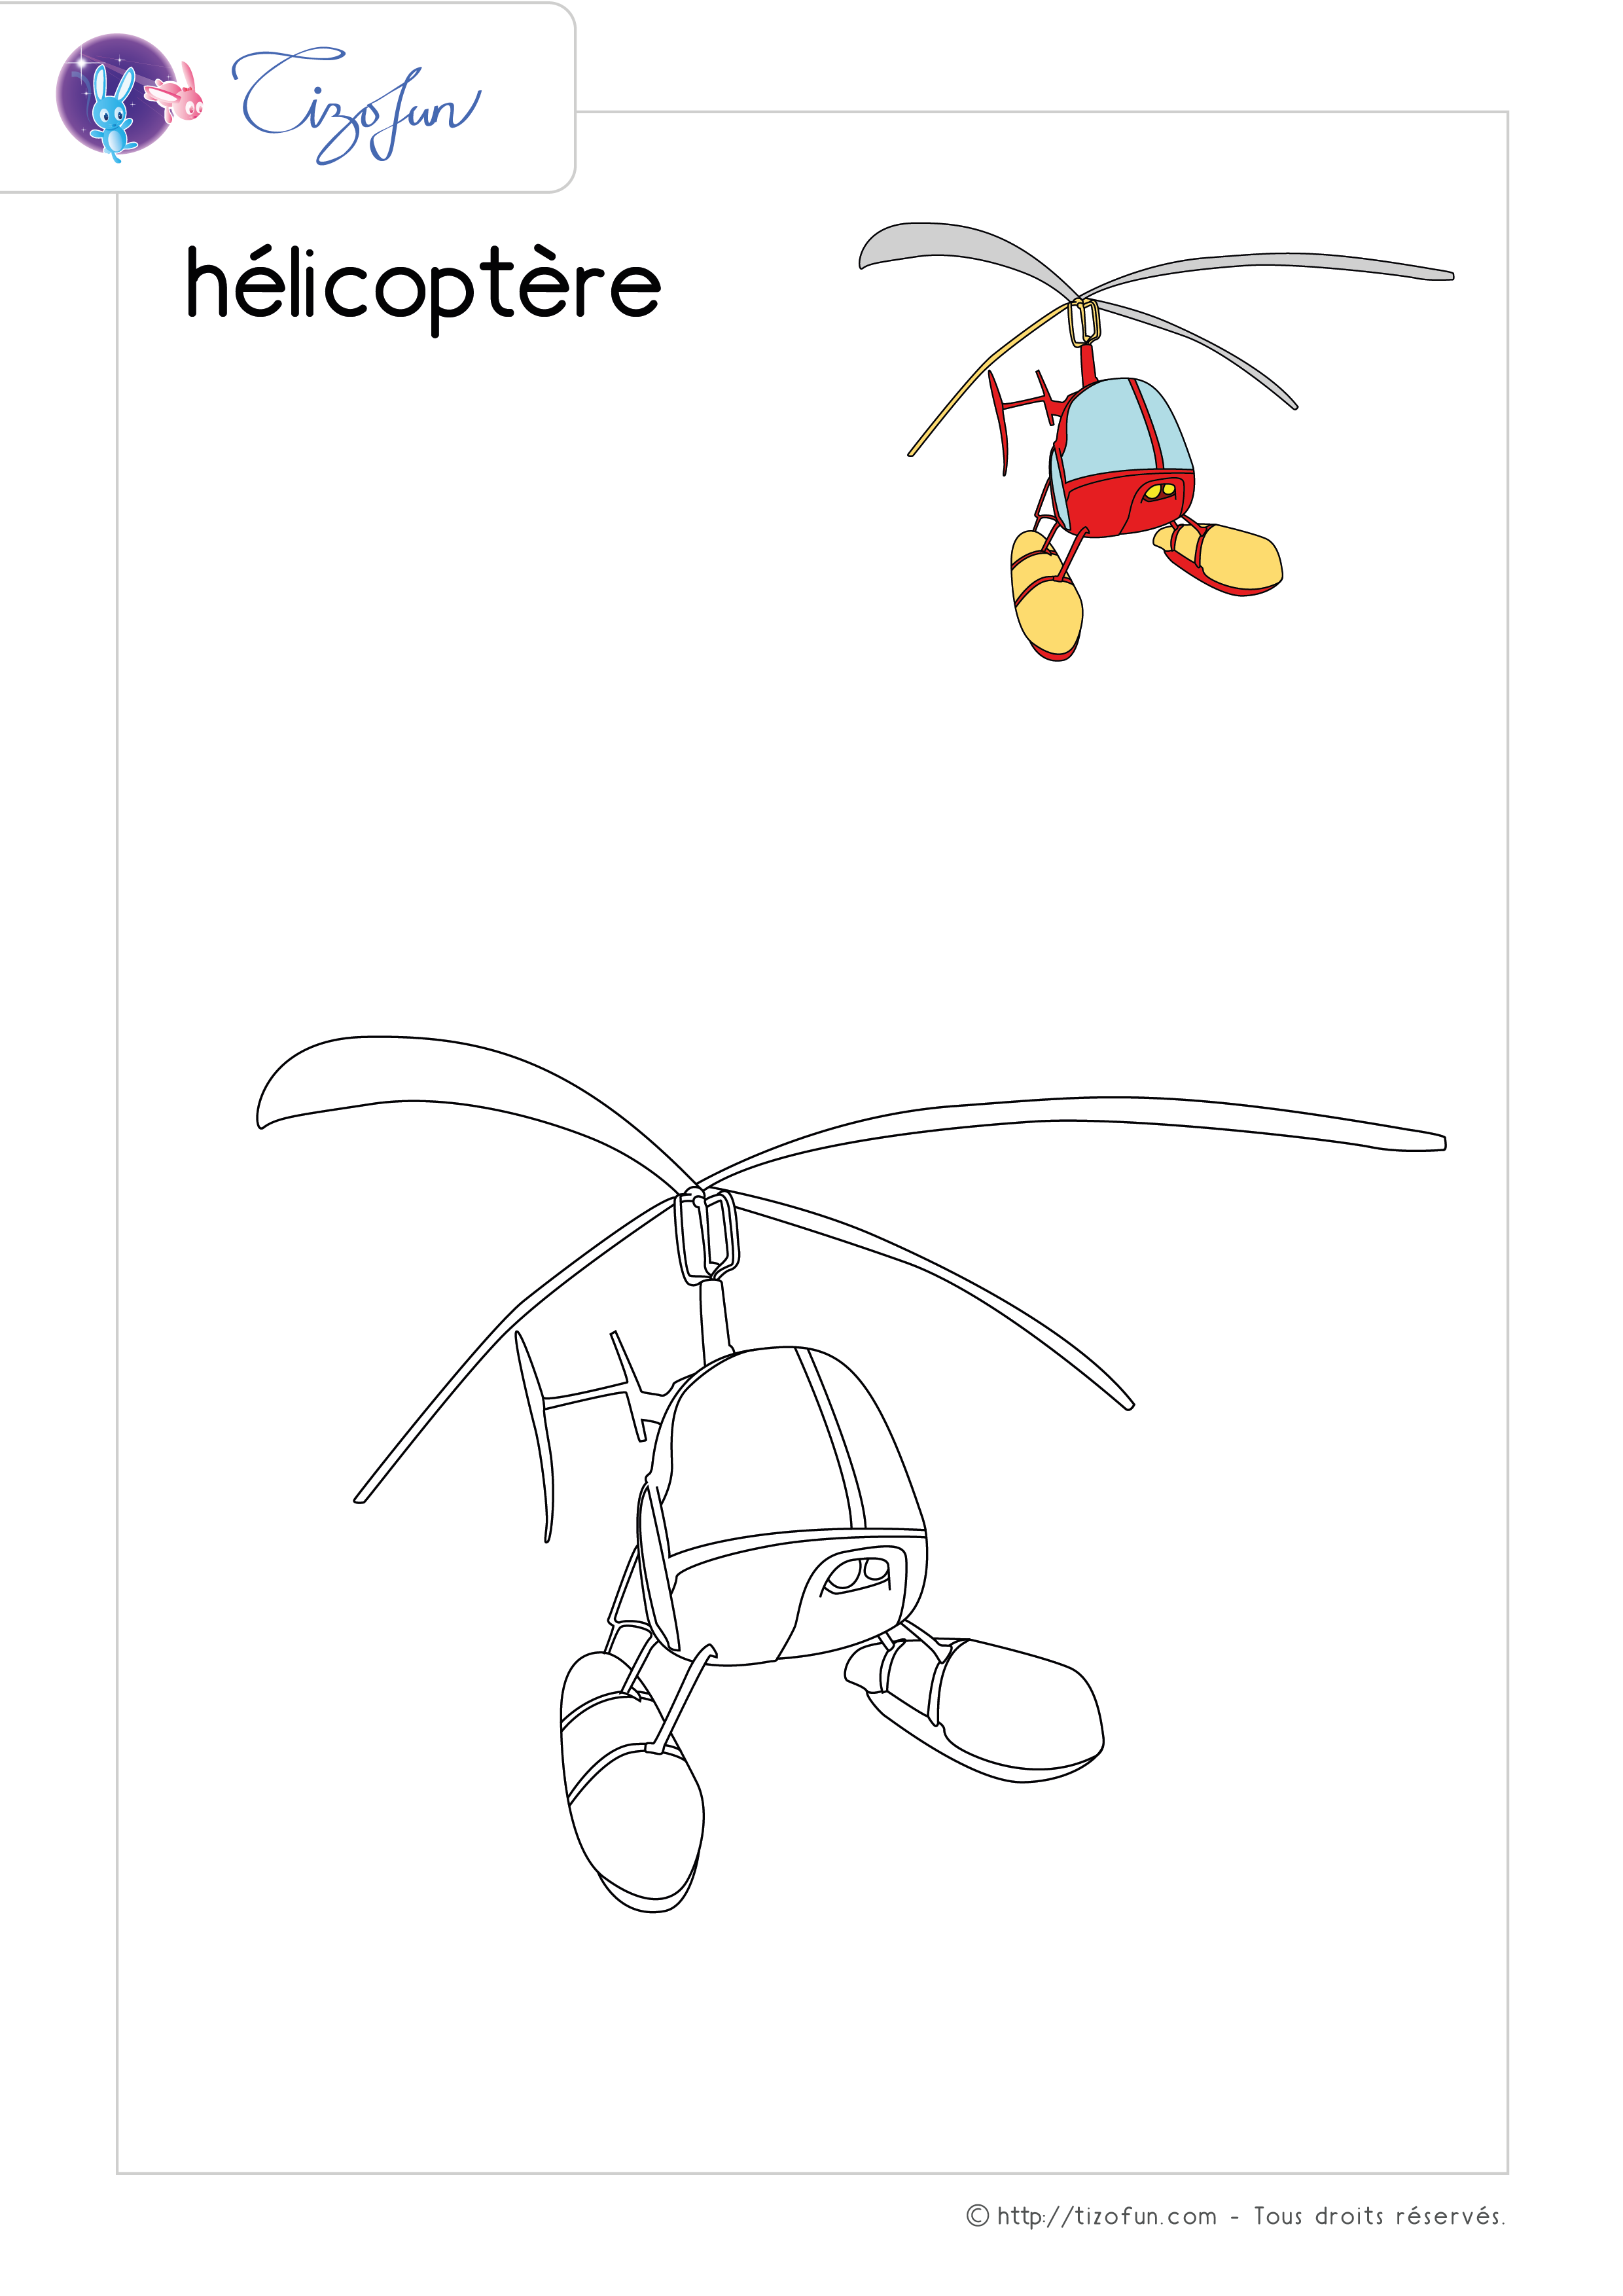 coloriage-transport-dessin-helicoptere